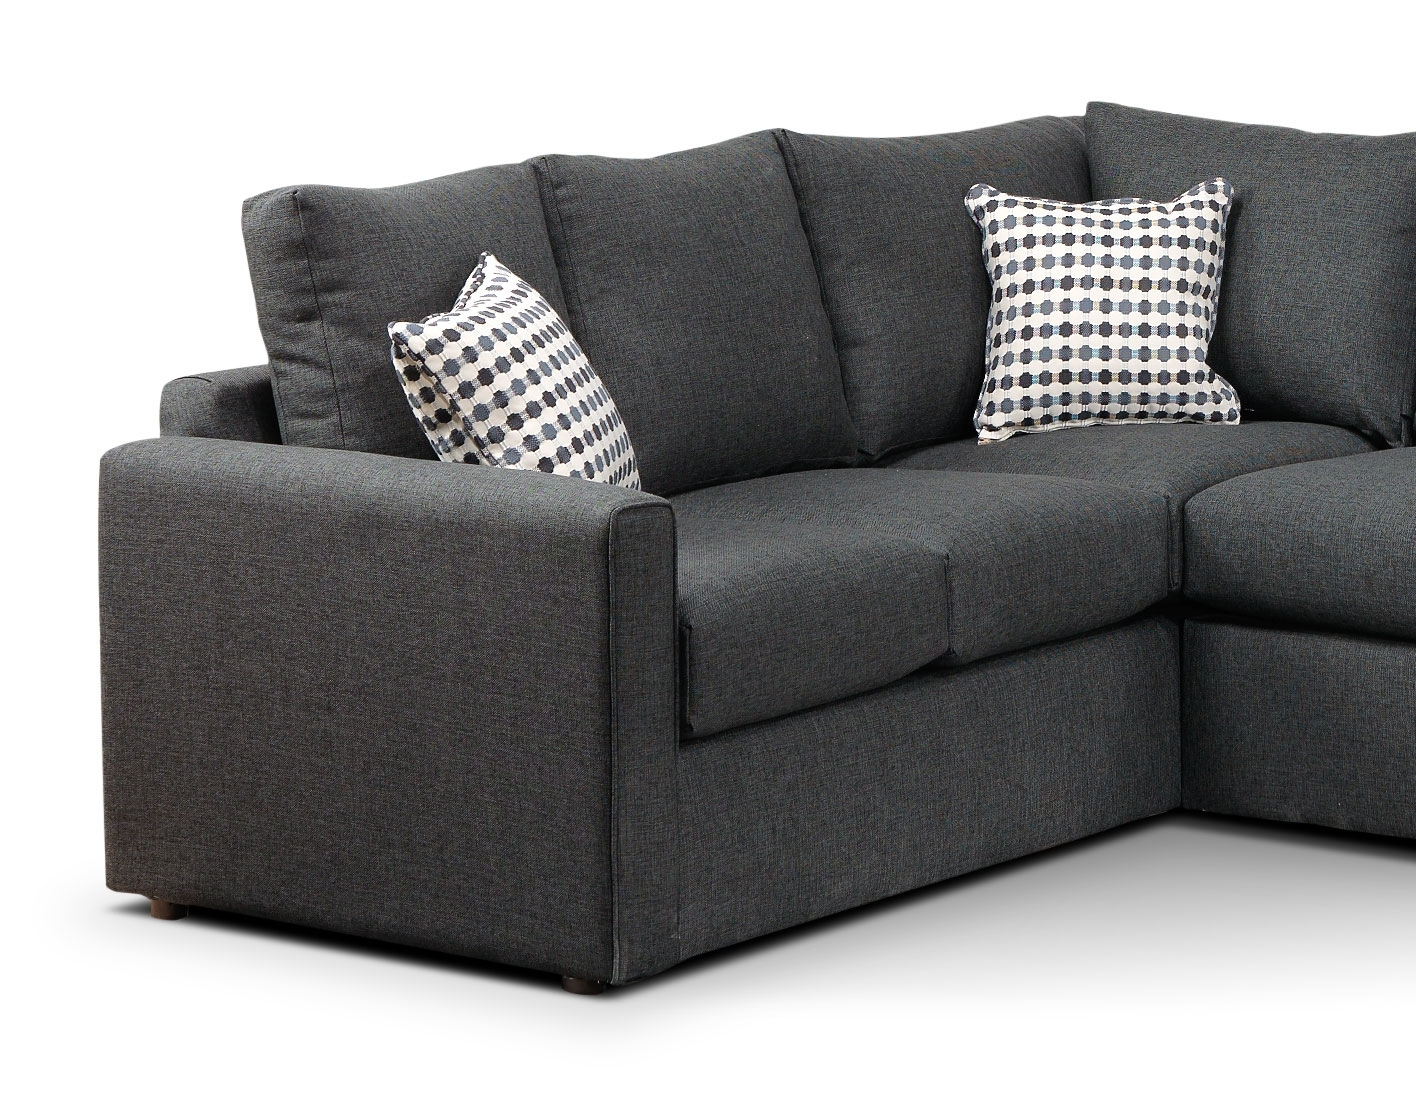 Athina 2 Piece Sectional With Left Facing Queen Sofa Bed With Trendy Vancouver Bc Canada Sectional Sofas (Gallery 10 of 20)